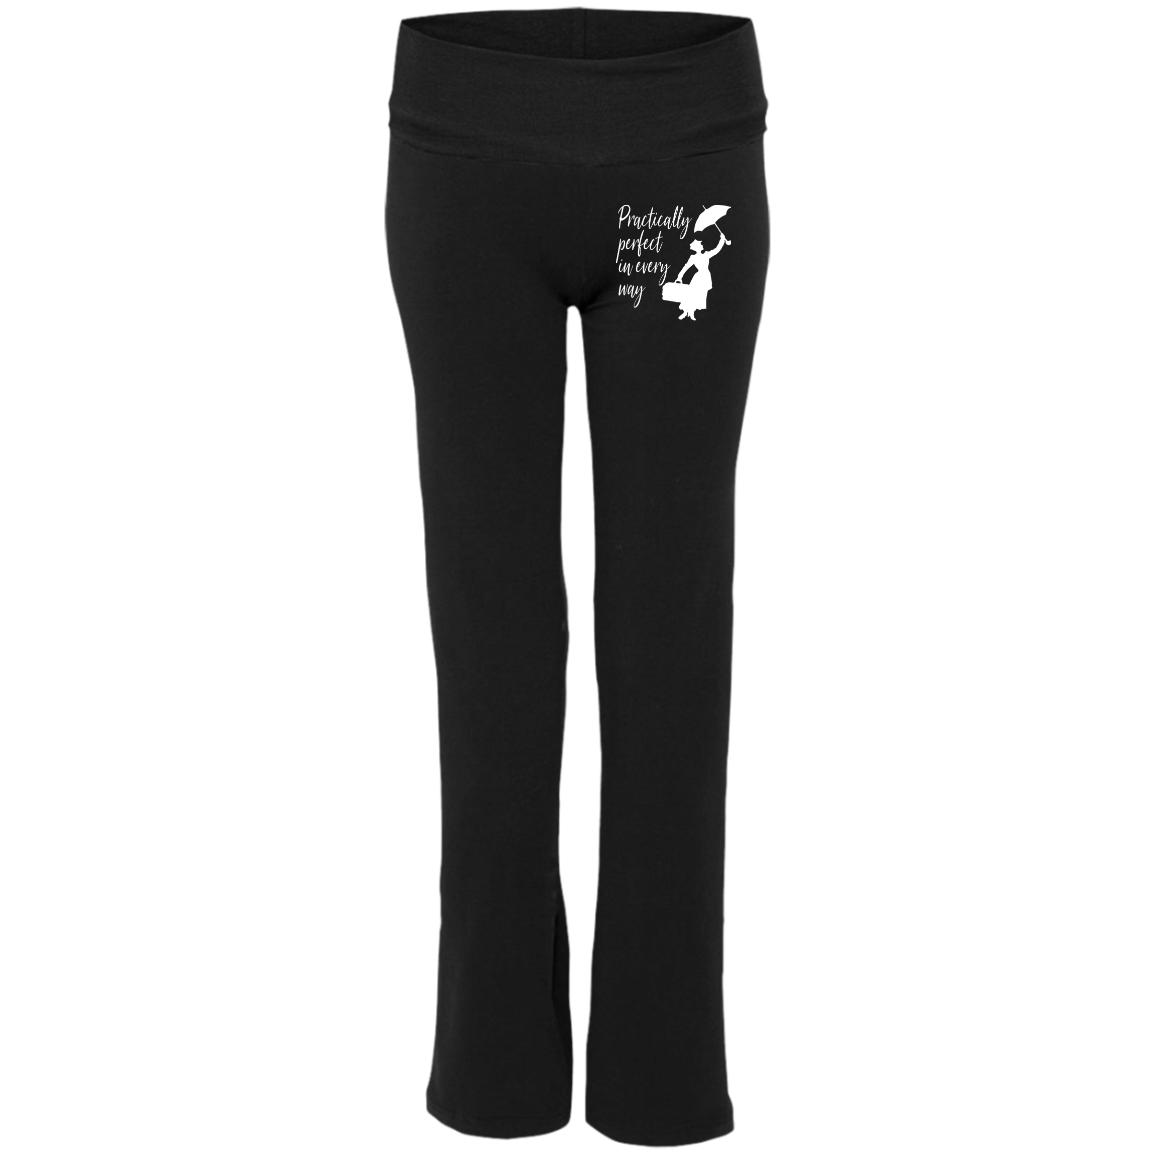 Mary Poppins Practically Perfect - Ladies' Yoga Pants